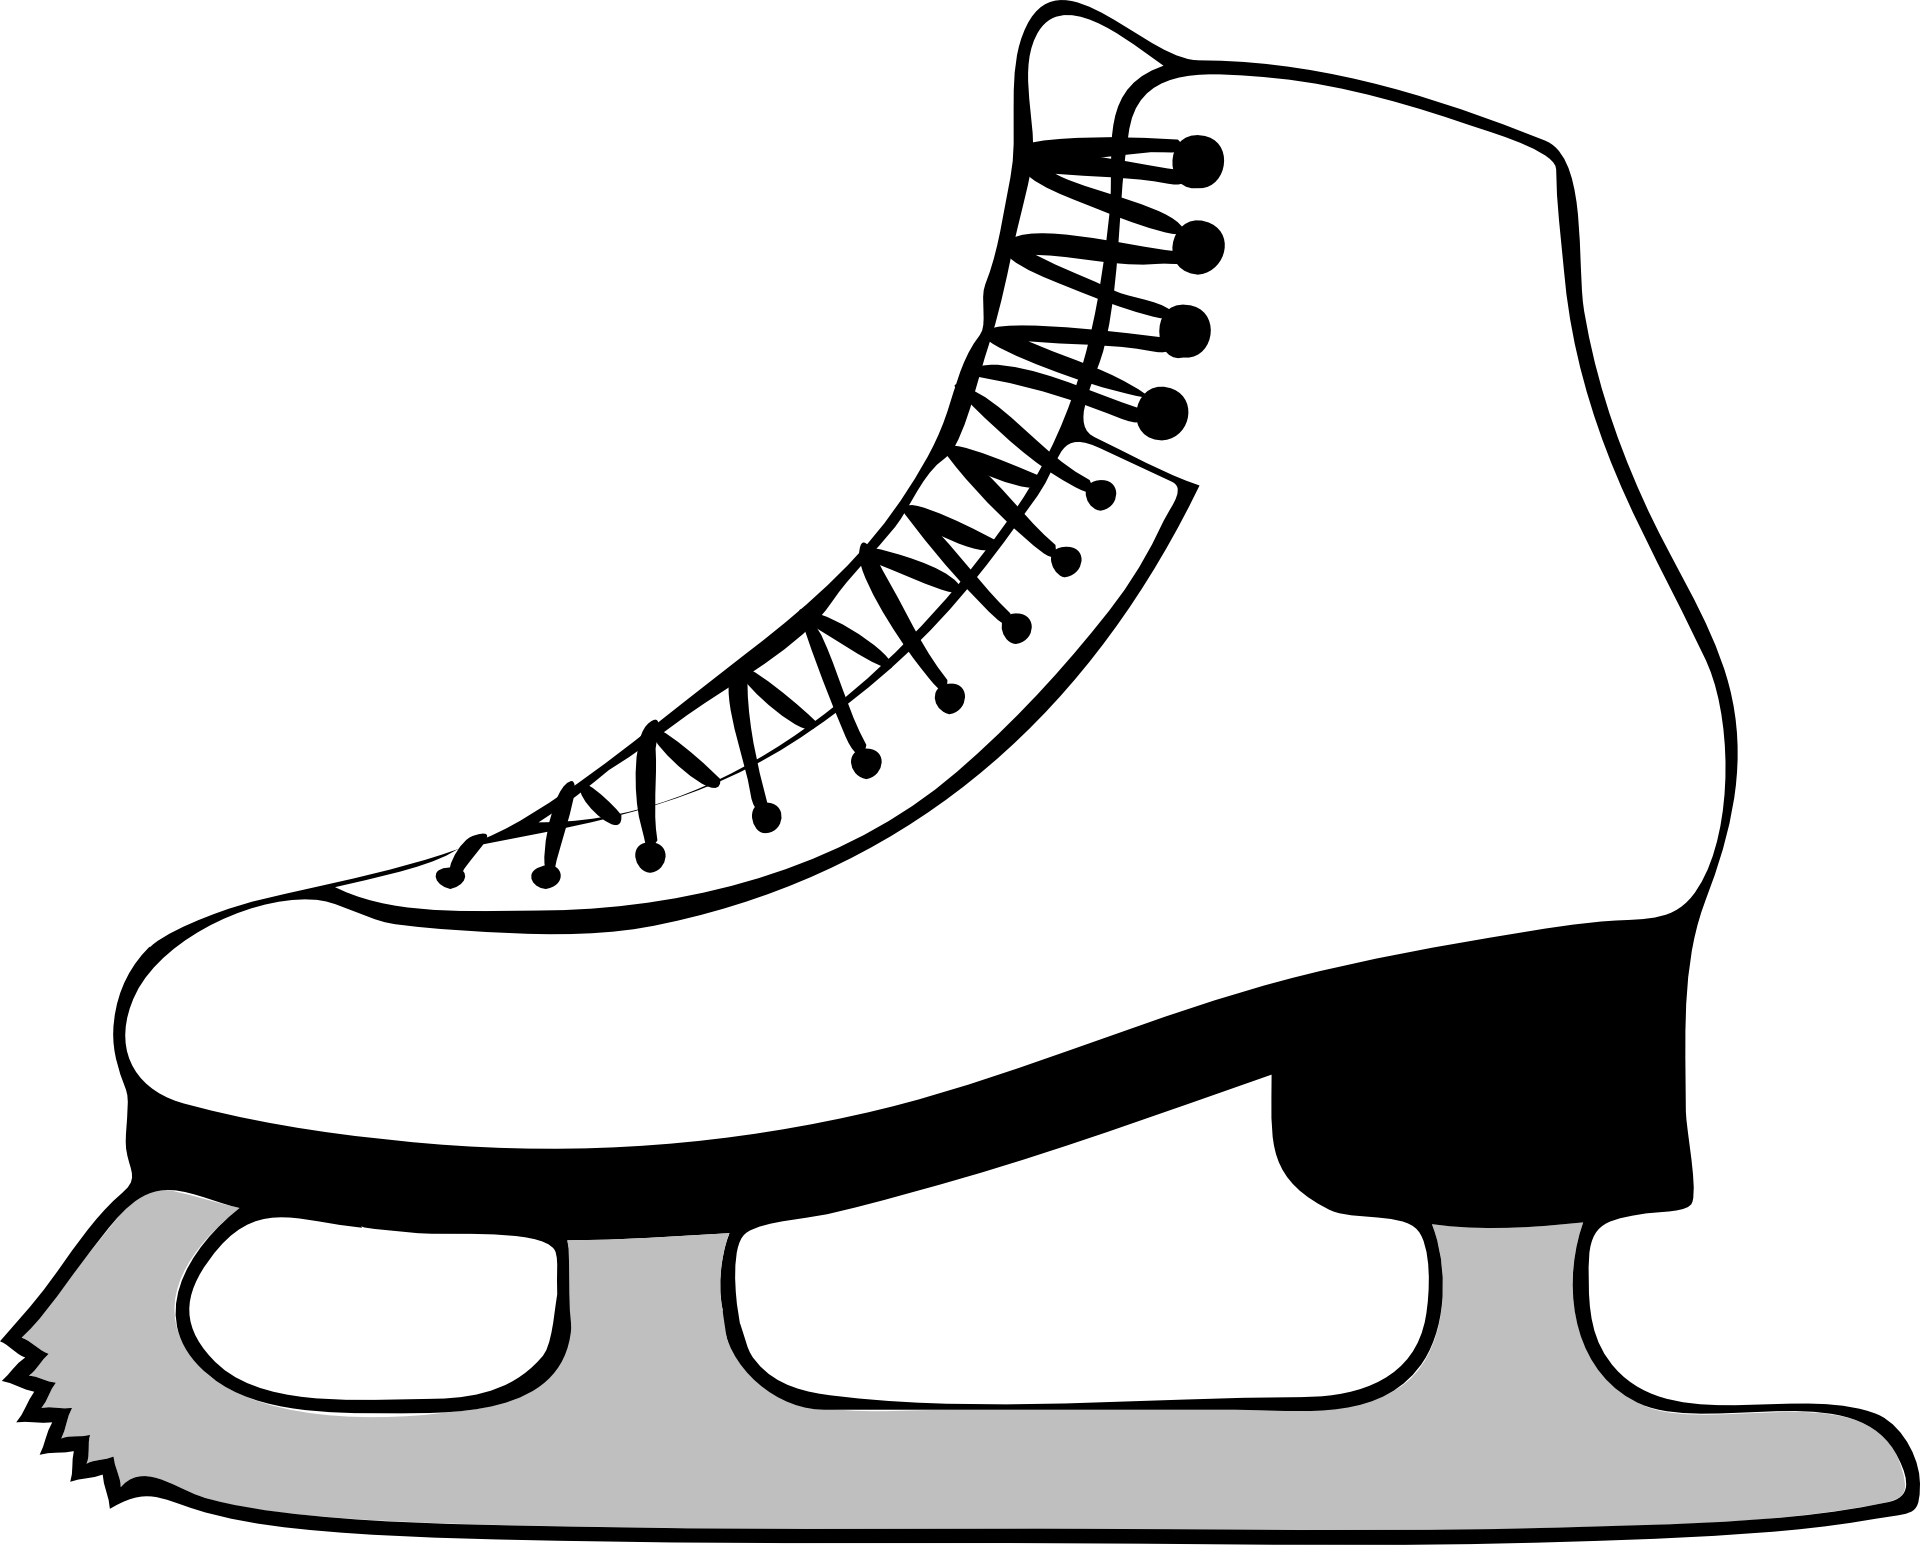 image about Hockey Skate Template Free Printable referred to as Hockey Skate Drawing Free of charge down load most straightforward Hockey Skate